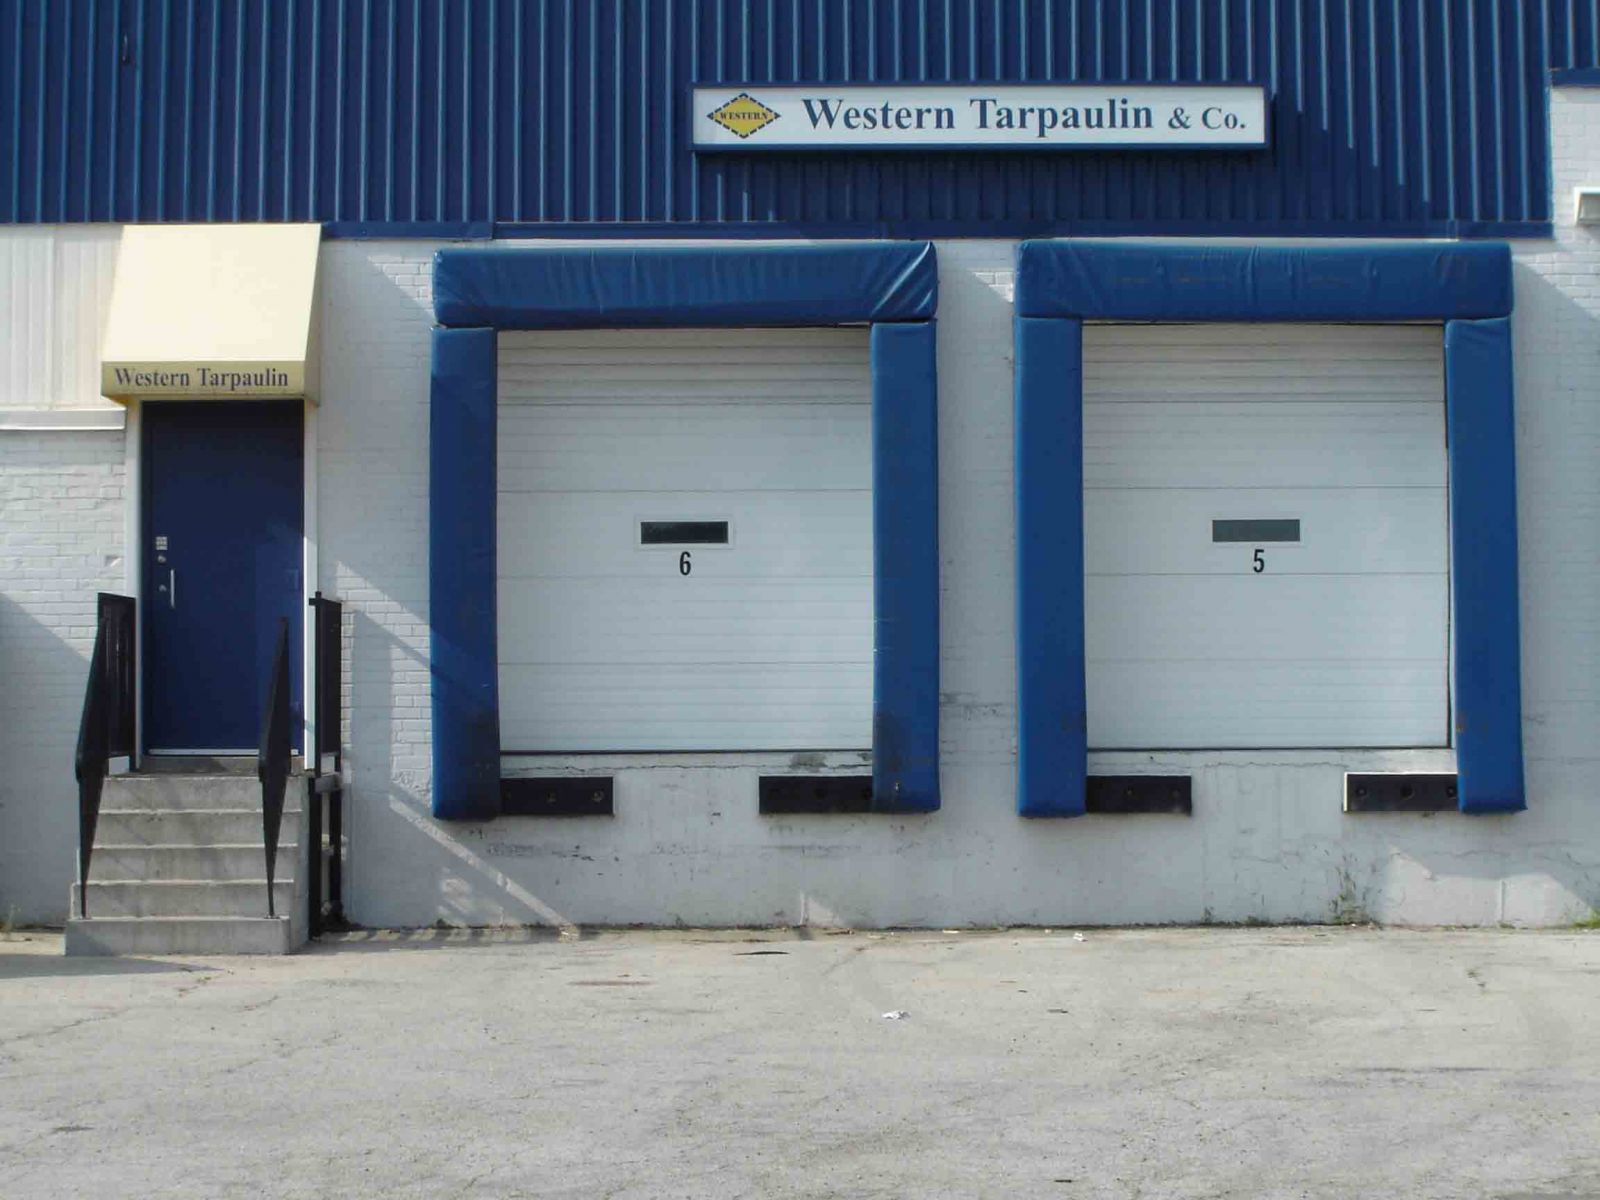 Dock bumpers and loading dock seals